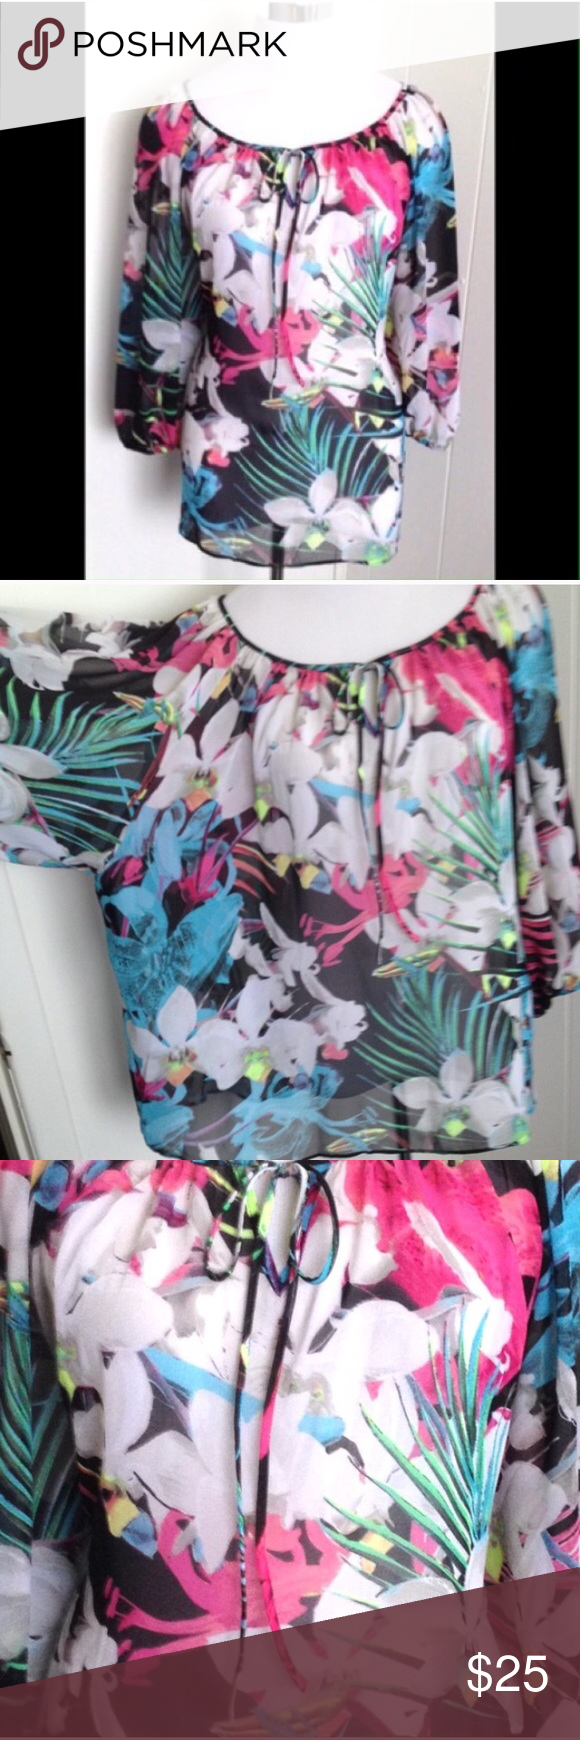 Gorgeous Floral Blouse 3X Like new. Flowy. Semi sheer. Tie front.  Super cute oversized and belted with leggings. I wore this that way st size 18Off the shoulder a.n.a Tops Blouses